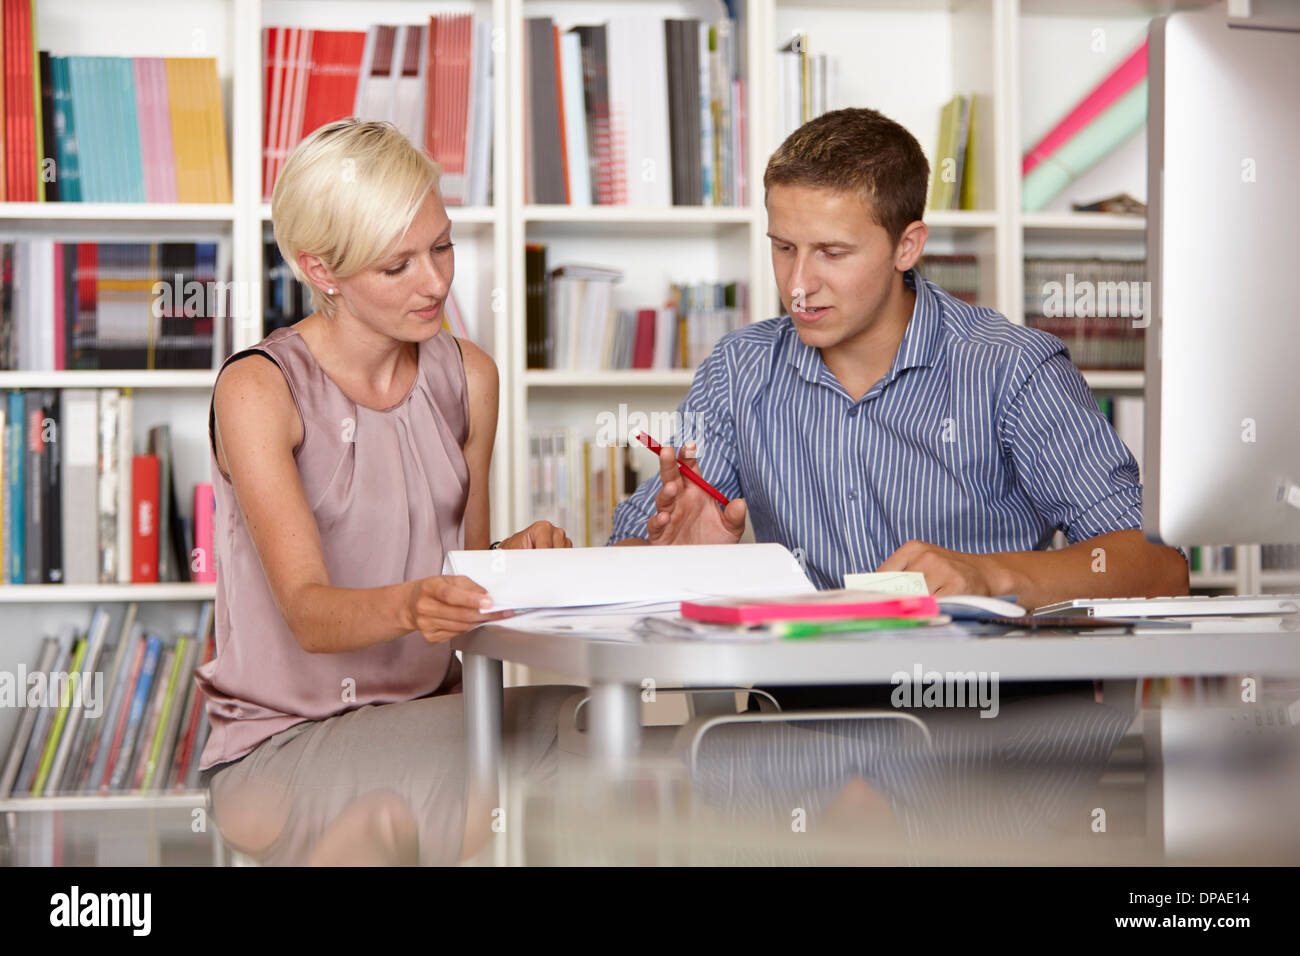 Two colleagues in discussion - Stock Image